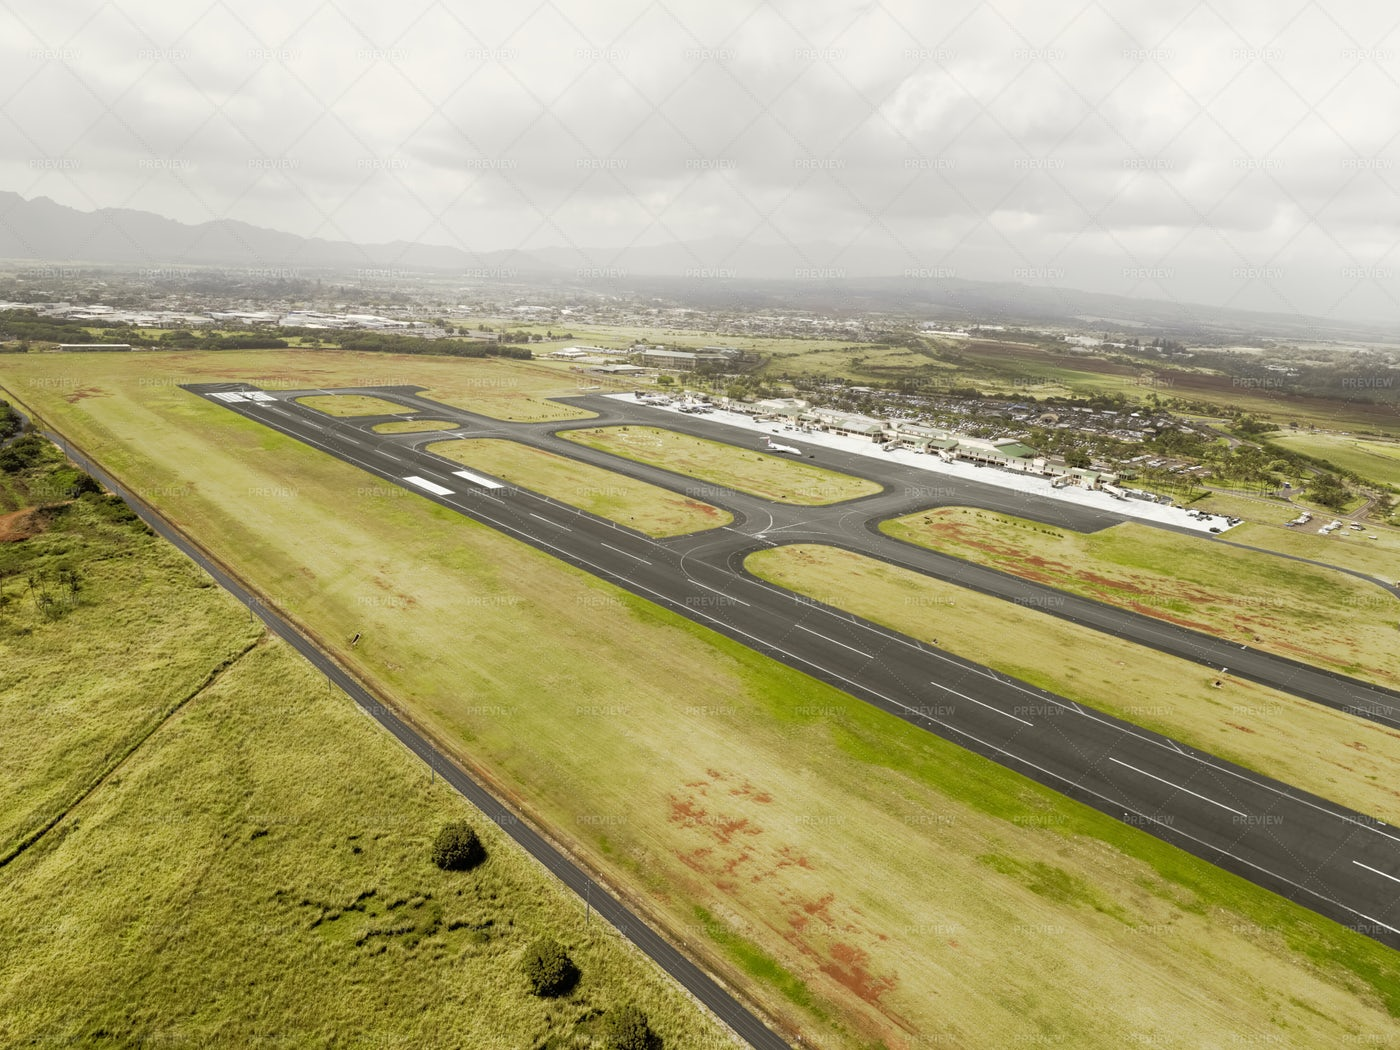 Aerial View Of Hilo Airport: Stock Photos